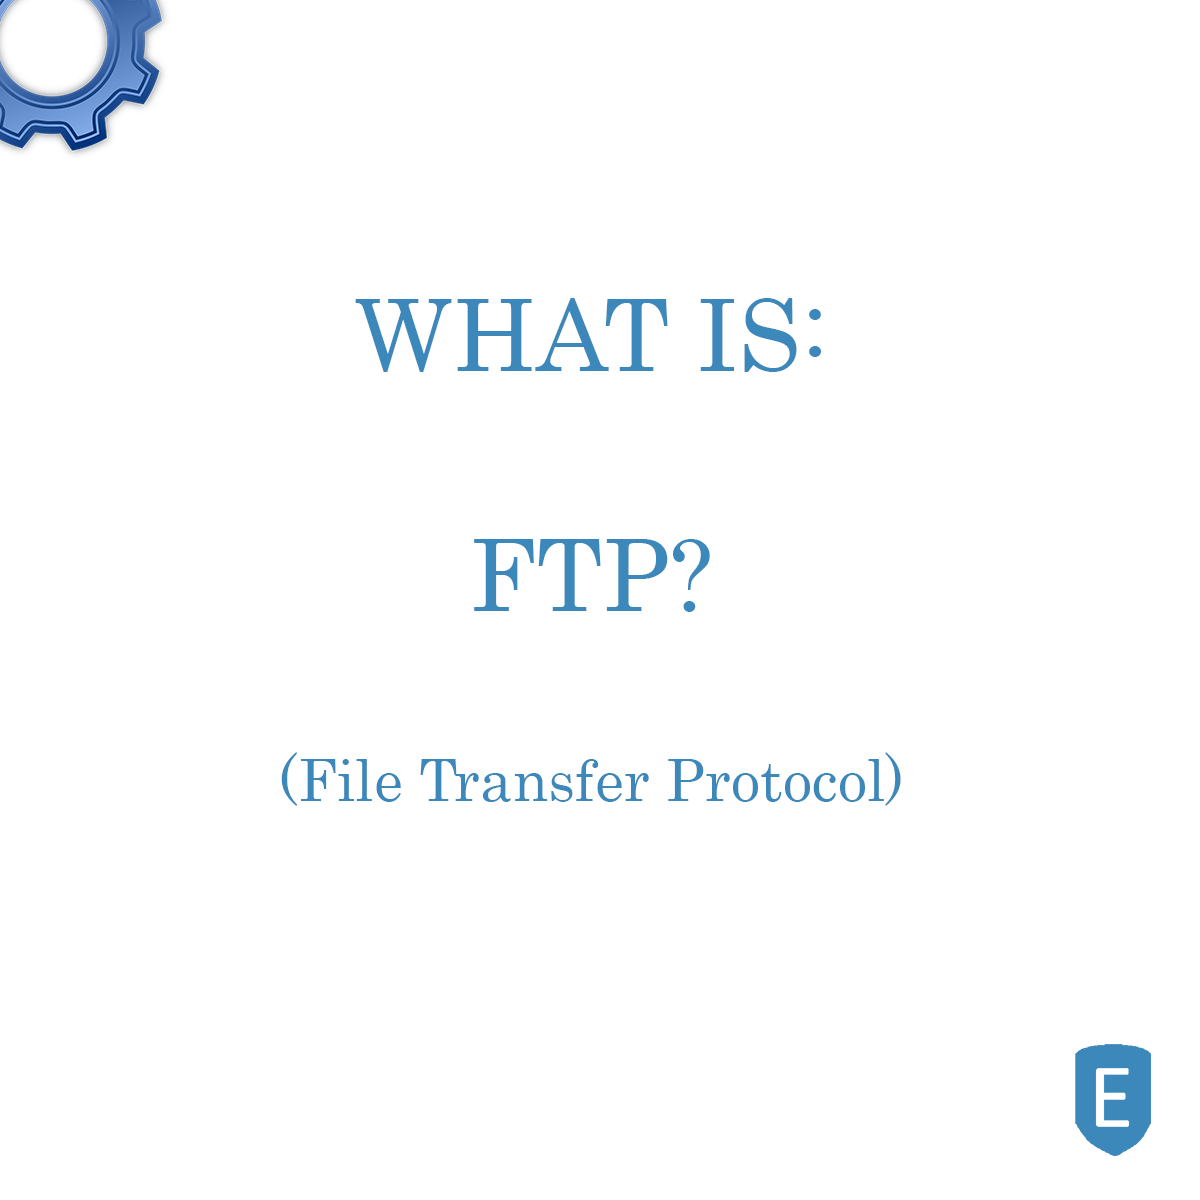 Wat is FTP?